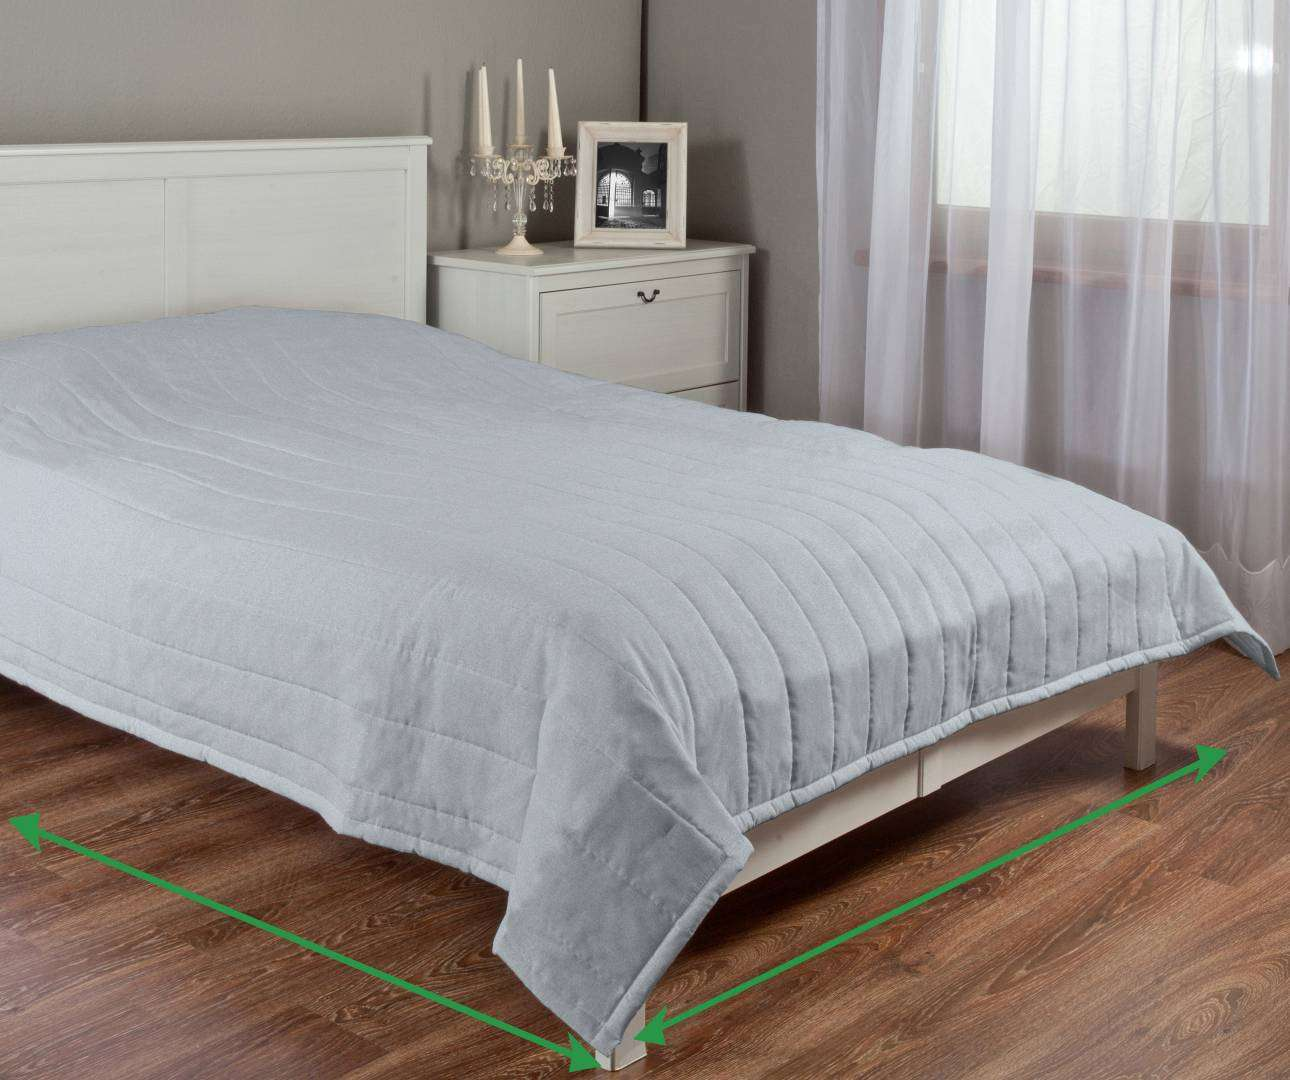 Quilted throw (vertical quilt pattern) in collection Rustica, fabric: 138-19